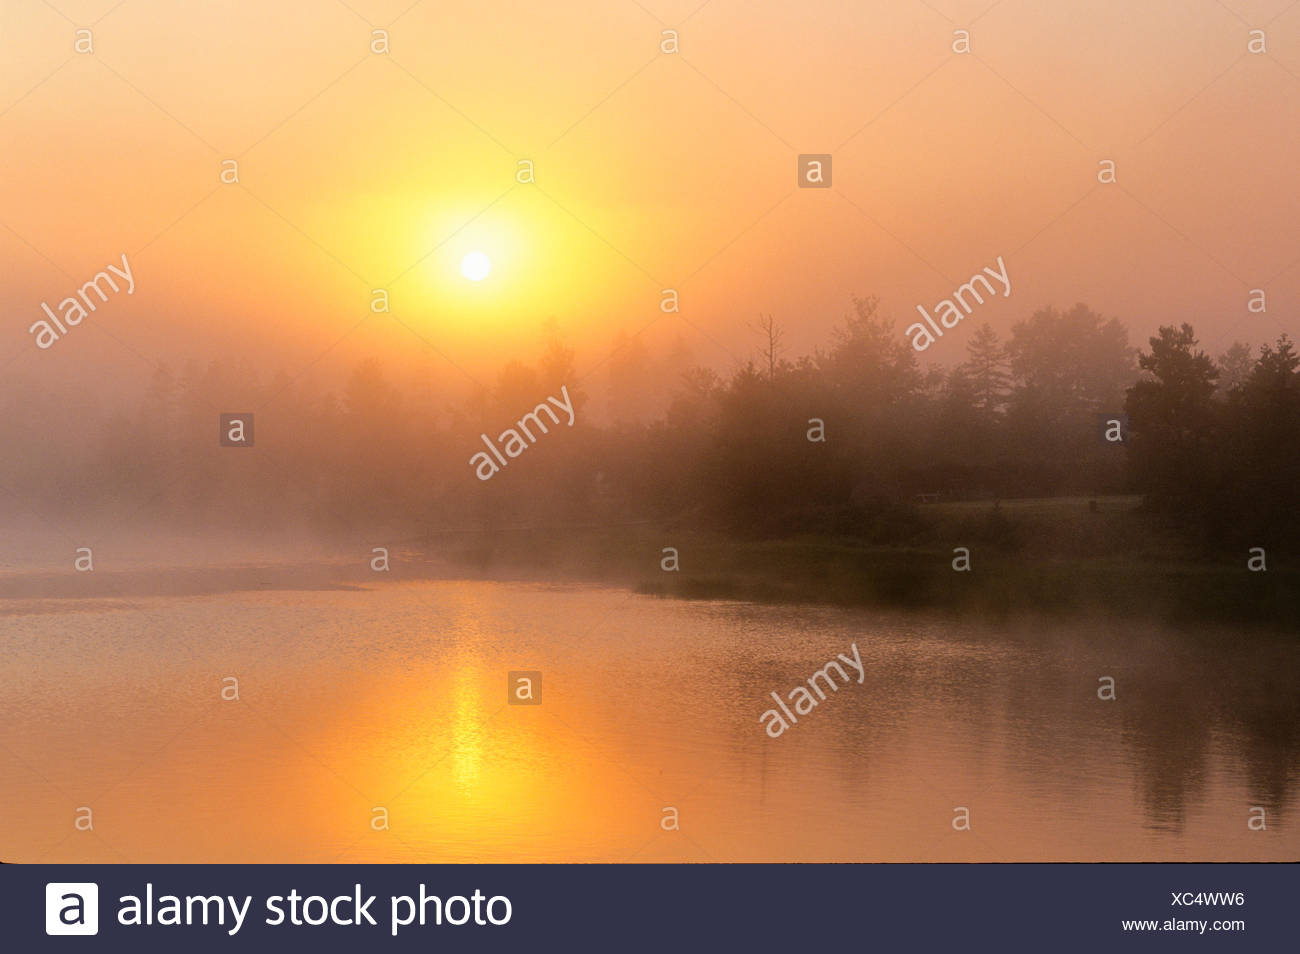 Sunrising through fog, West River, Prince Edward Island, Canada - Stock Image